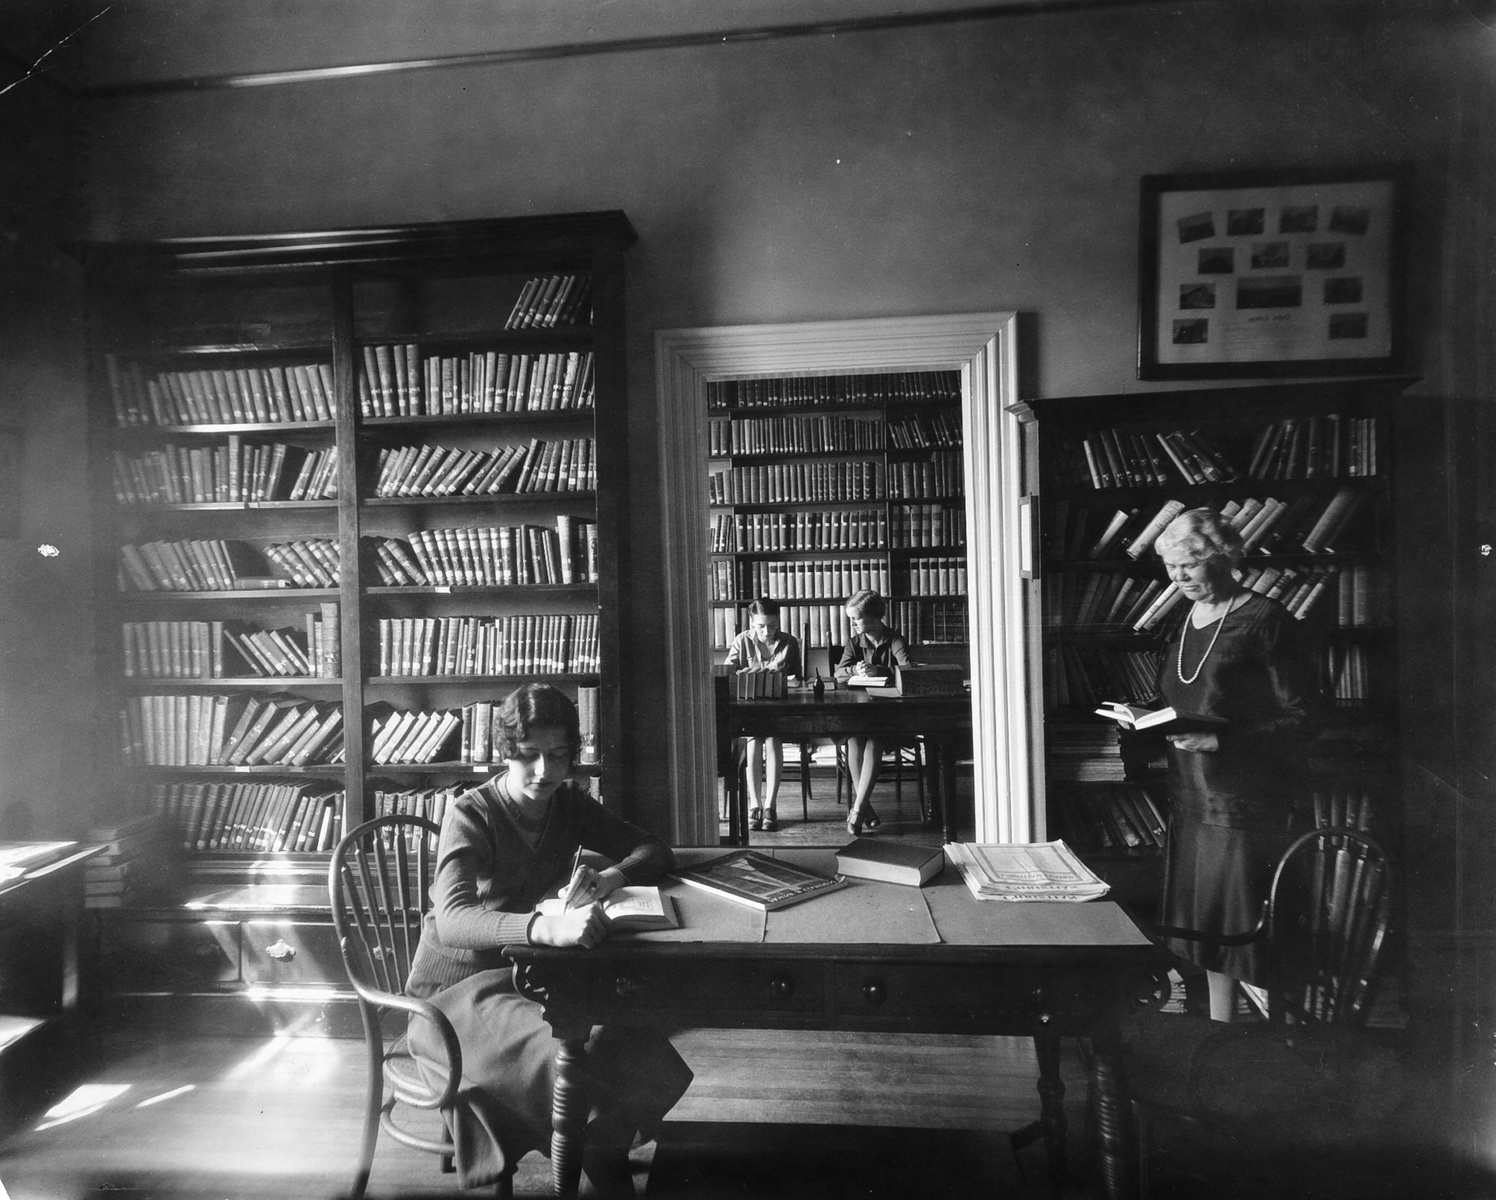 Black and white historic photograph of women studying in a library